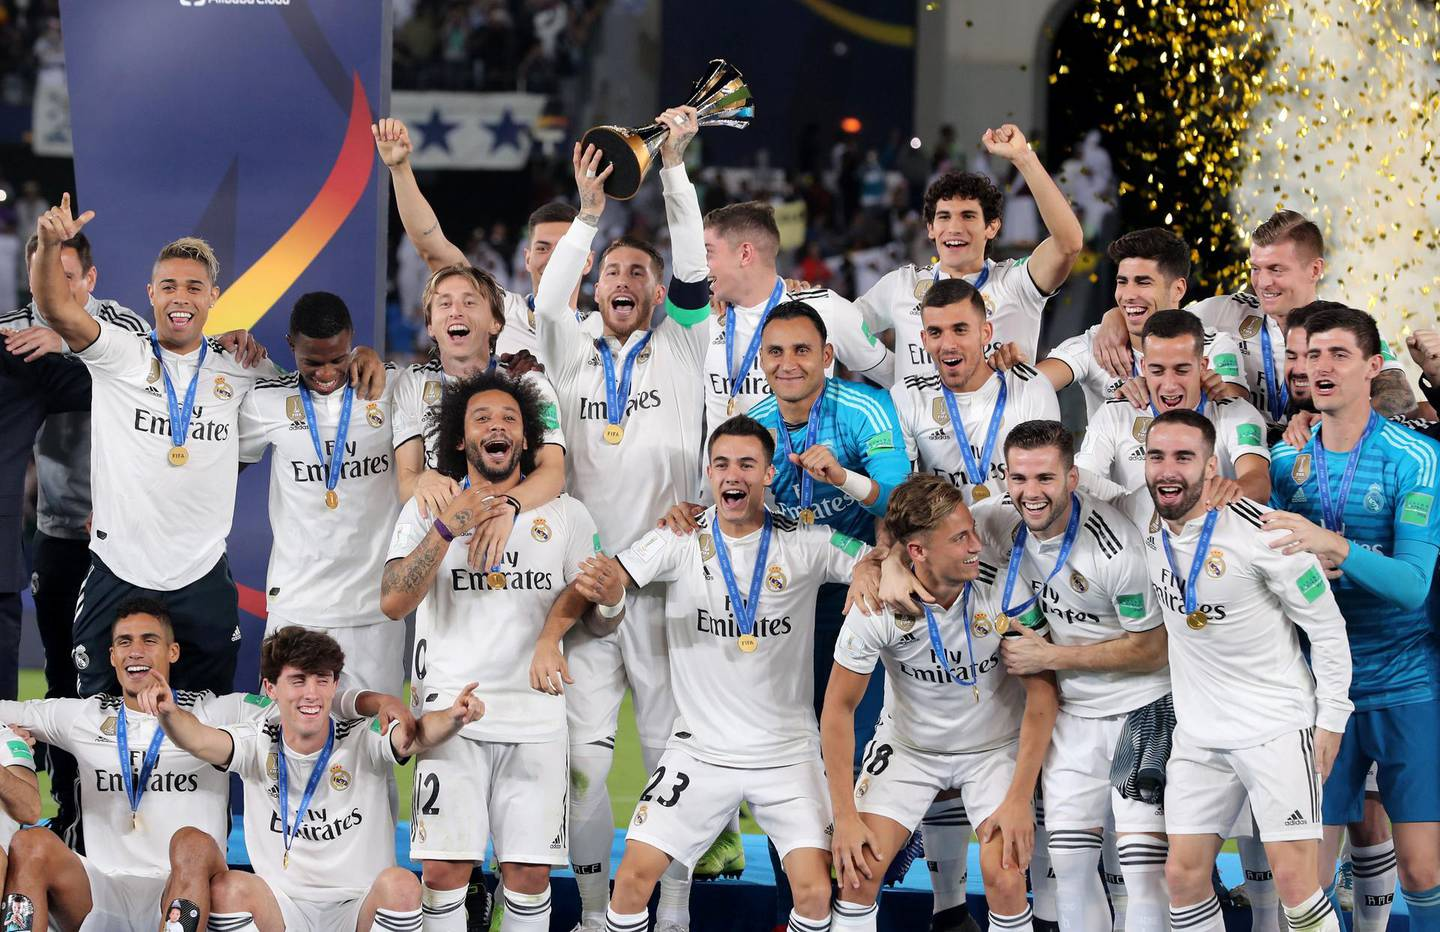 Abu Dhabi, United Arab Emirates - December 22, 2018: Real Madrid celebrate winning the cup after the match between Real Madrid and Al Ain at the Fifa Club World Cup final. Saturday the 22nd of December 2018 at the Zayed Sports City Stadium, Abu Dhabi. Chris Whiteoak / The National